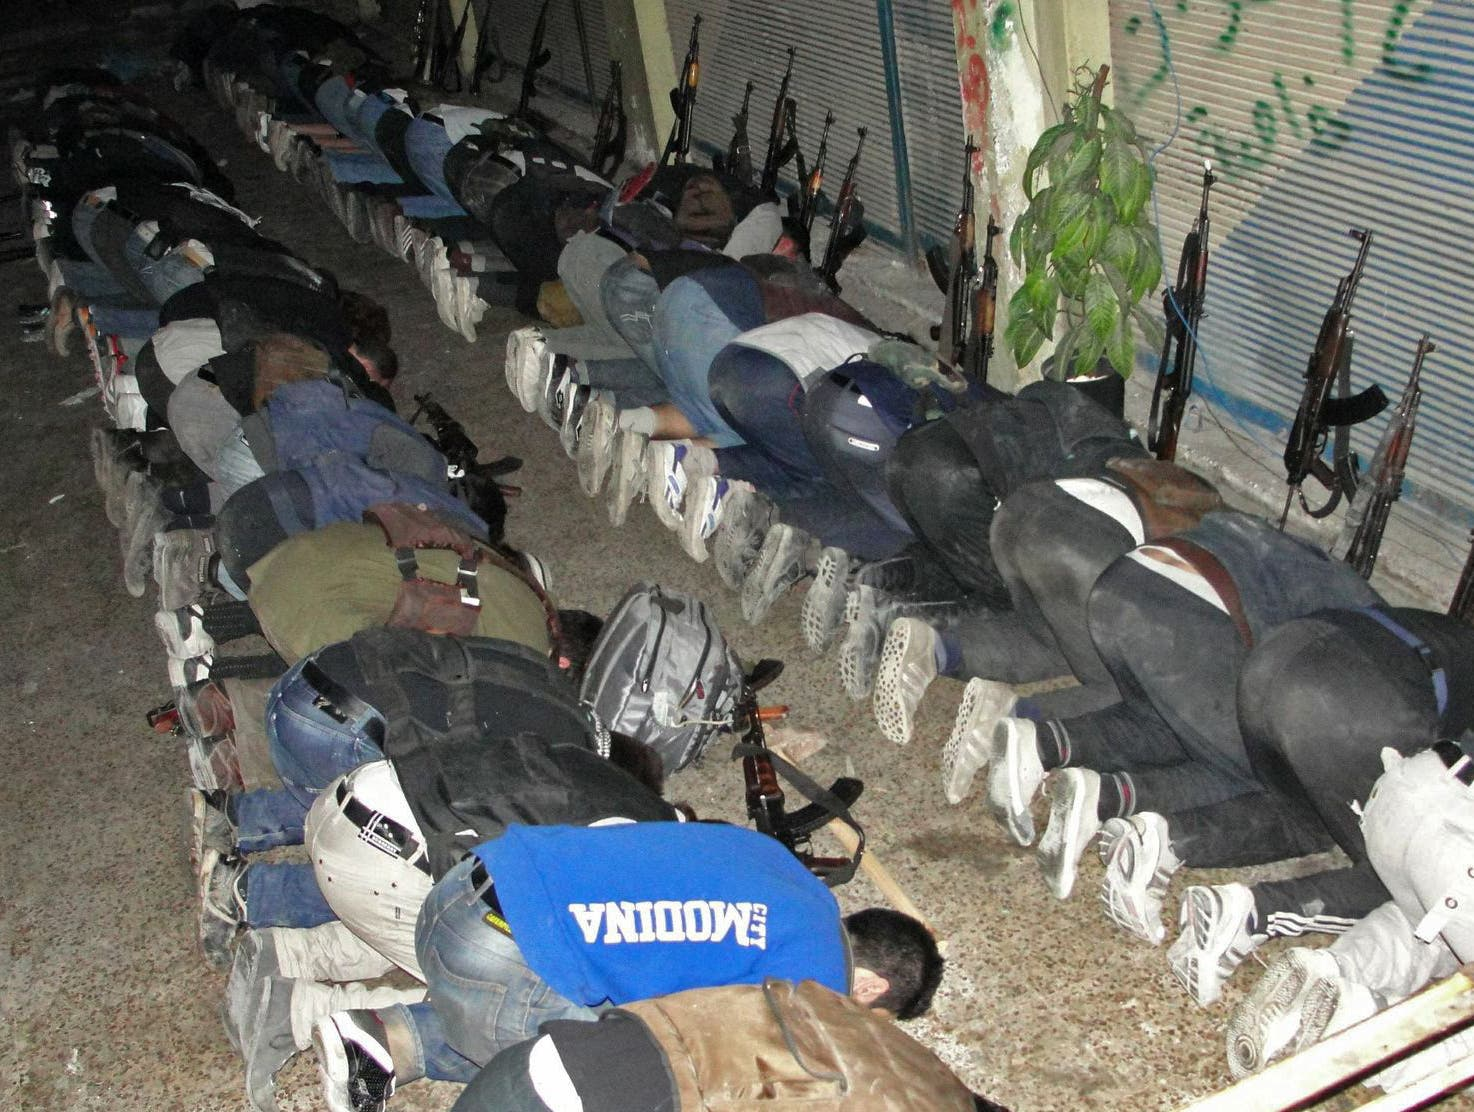 A handout picture released by the opposition-run Shaam News Network on June 21, 2013 shows rebel fighters praying in Syria's central city of Homs on June 17. (AFP/MOHAMMED IBRAHIM / SHAAM NEWS NETWORK